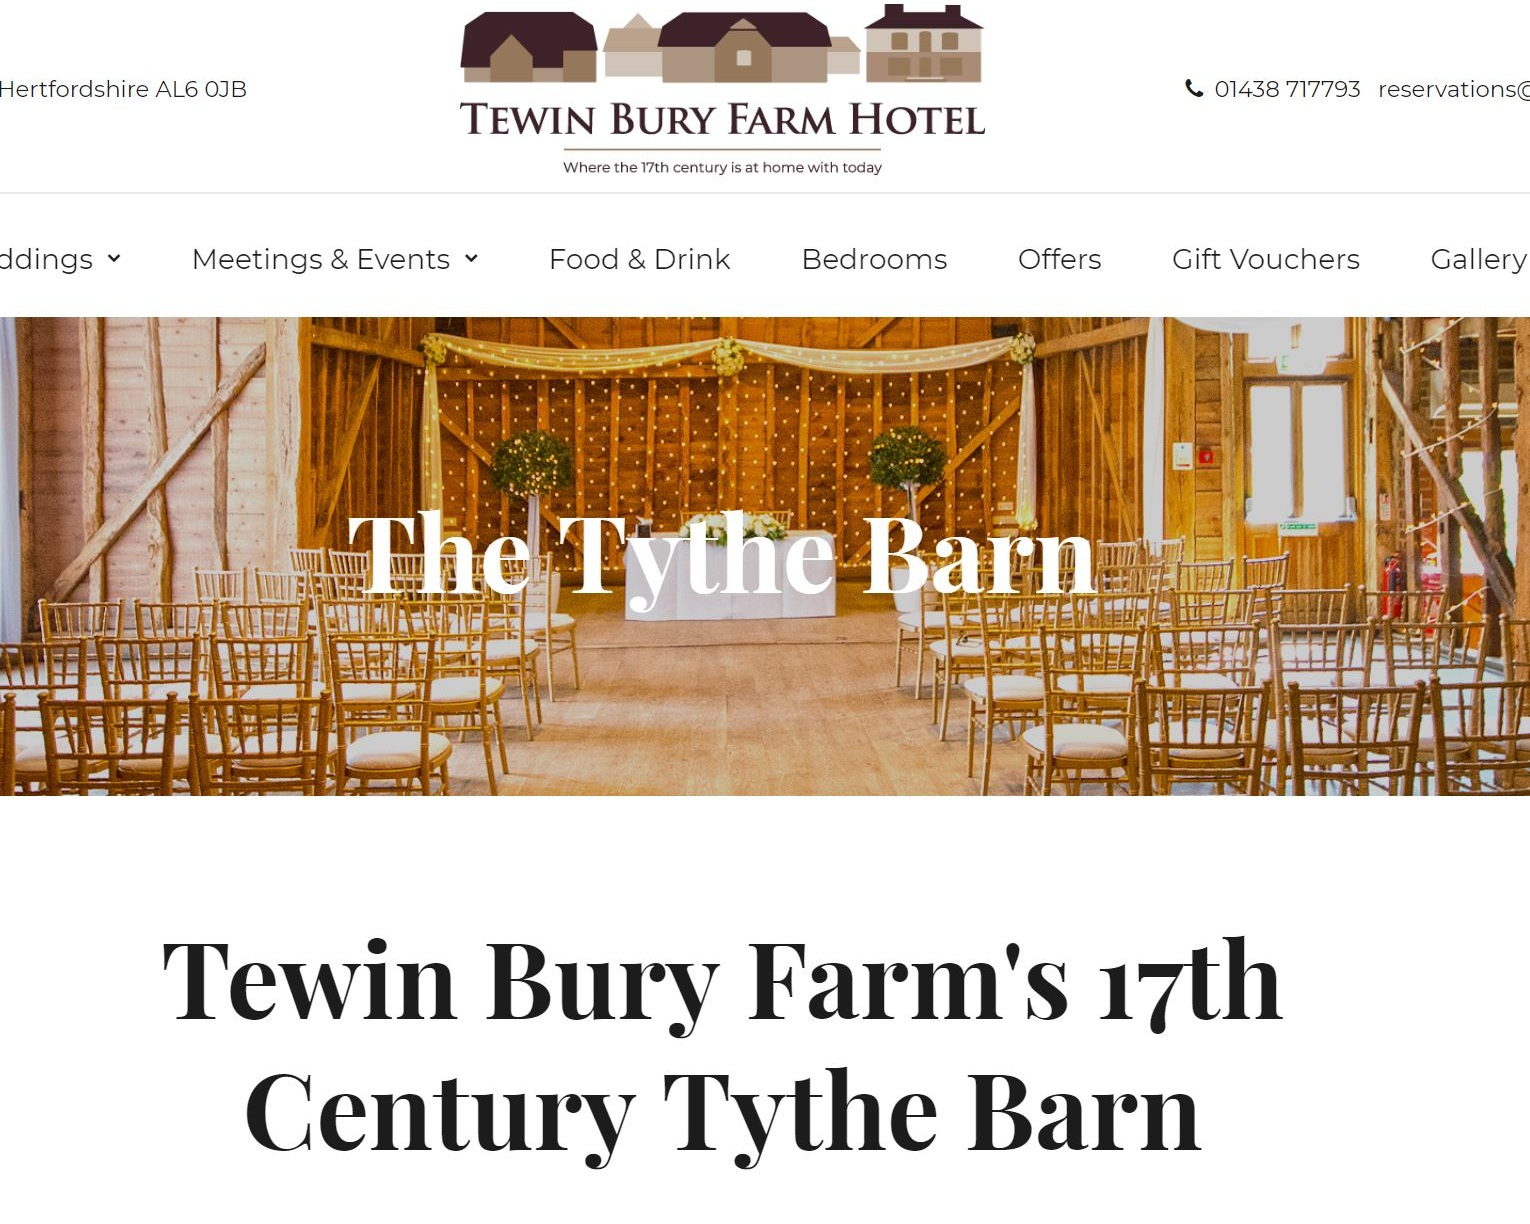 Tewin Bury Farm - Tewin Bury Farm Hotel, a 4 Star Hotel set in the beautiful Hertfordshire Countryside. Our uniquely converted Farm buildings that run alongside the River Mimram offer an exquisite fusion of old and new which will not disappoint.